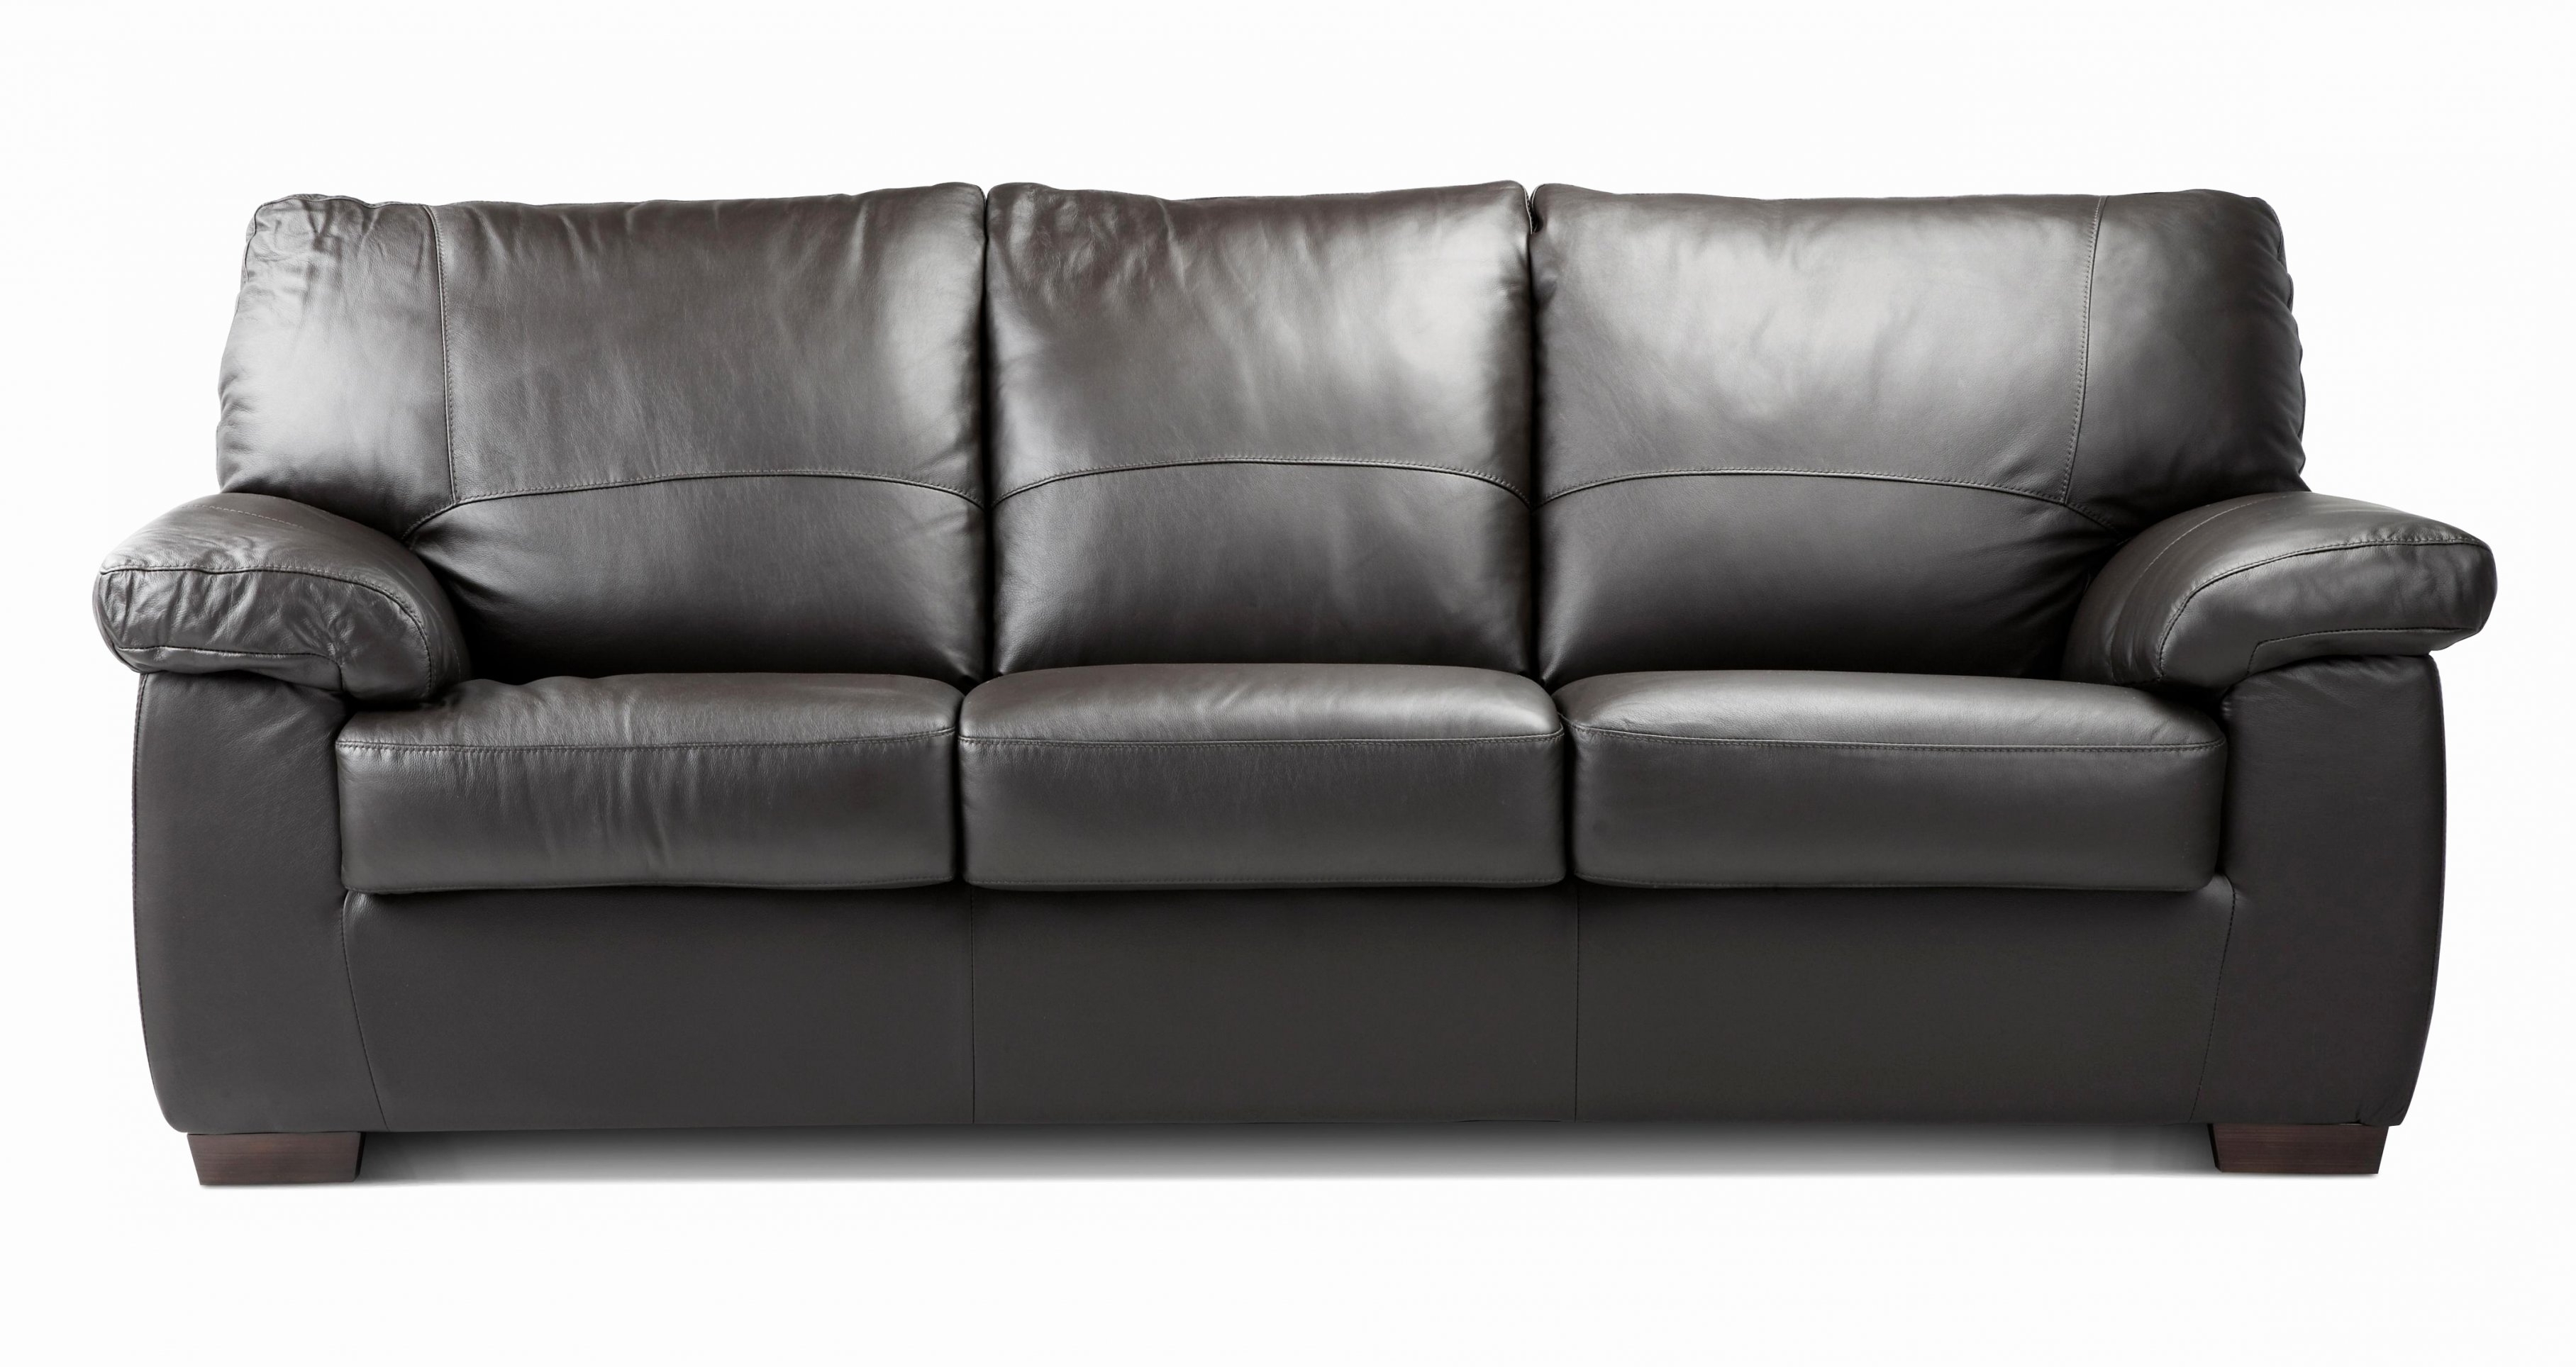 Most Popular 3 Seater Leather Sofas With Regard To 3 Seat Black Leather Sofa (View 6 of 20)